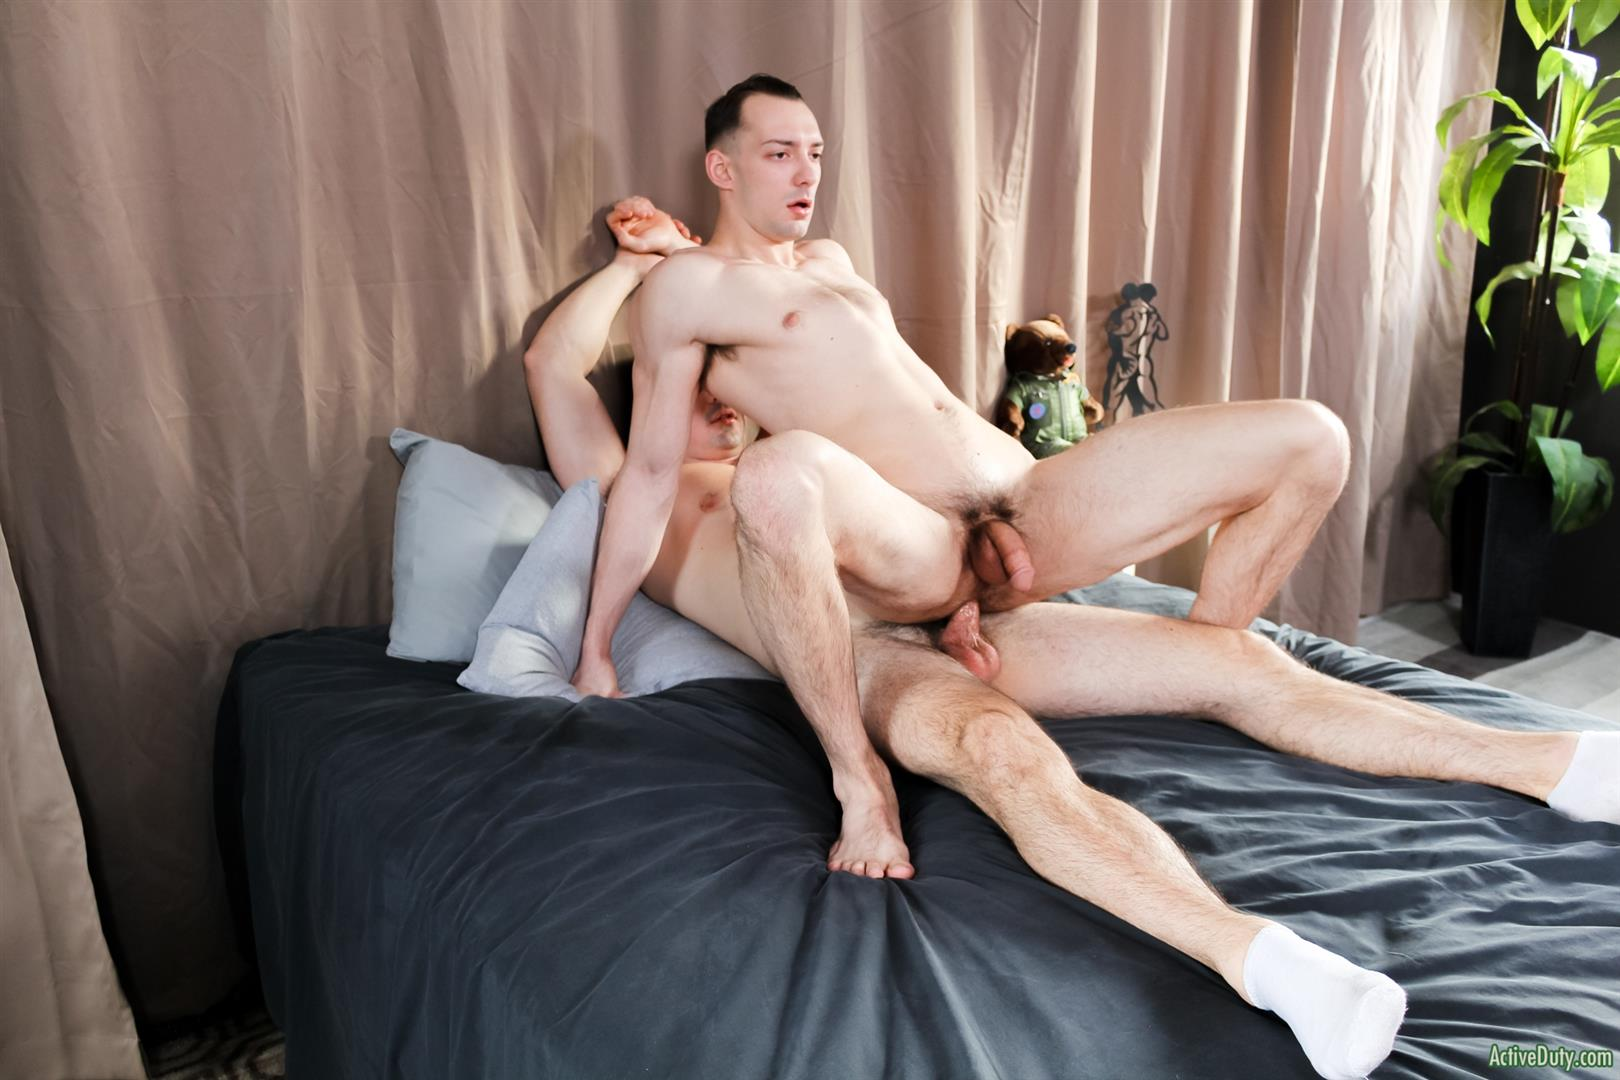 Active-Duty-Alex-James-and-Johnny-B-Big-Dick-Marines-Fucking-Bareback-10 Muscular US Marines Bareback Fucking With A Thick Cock